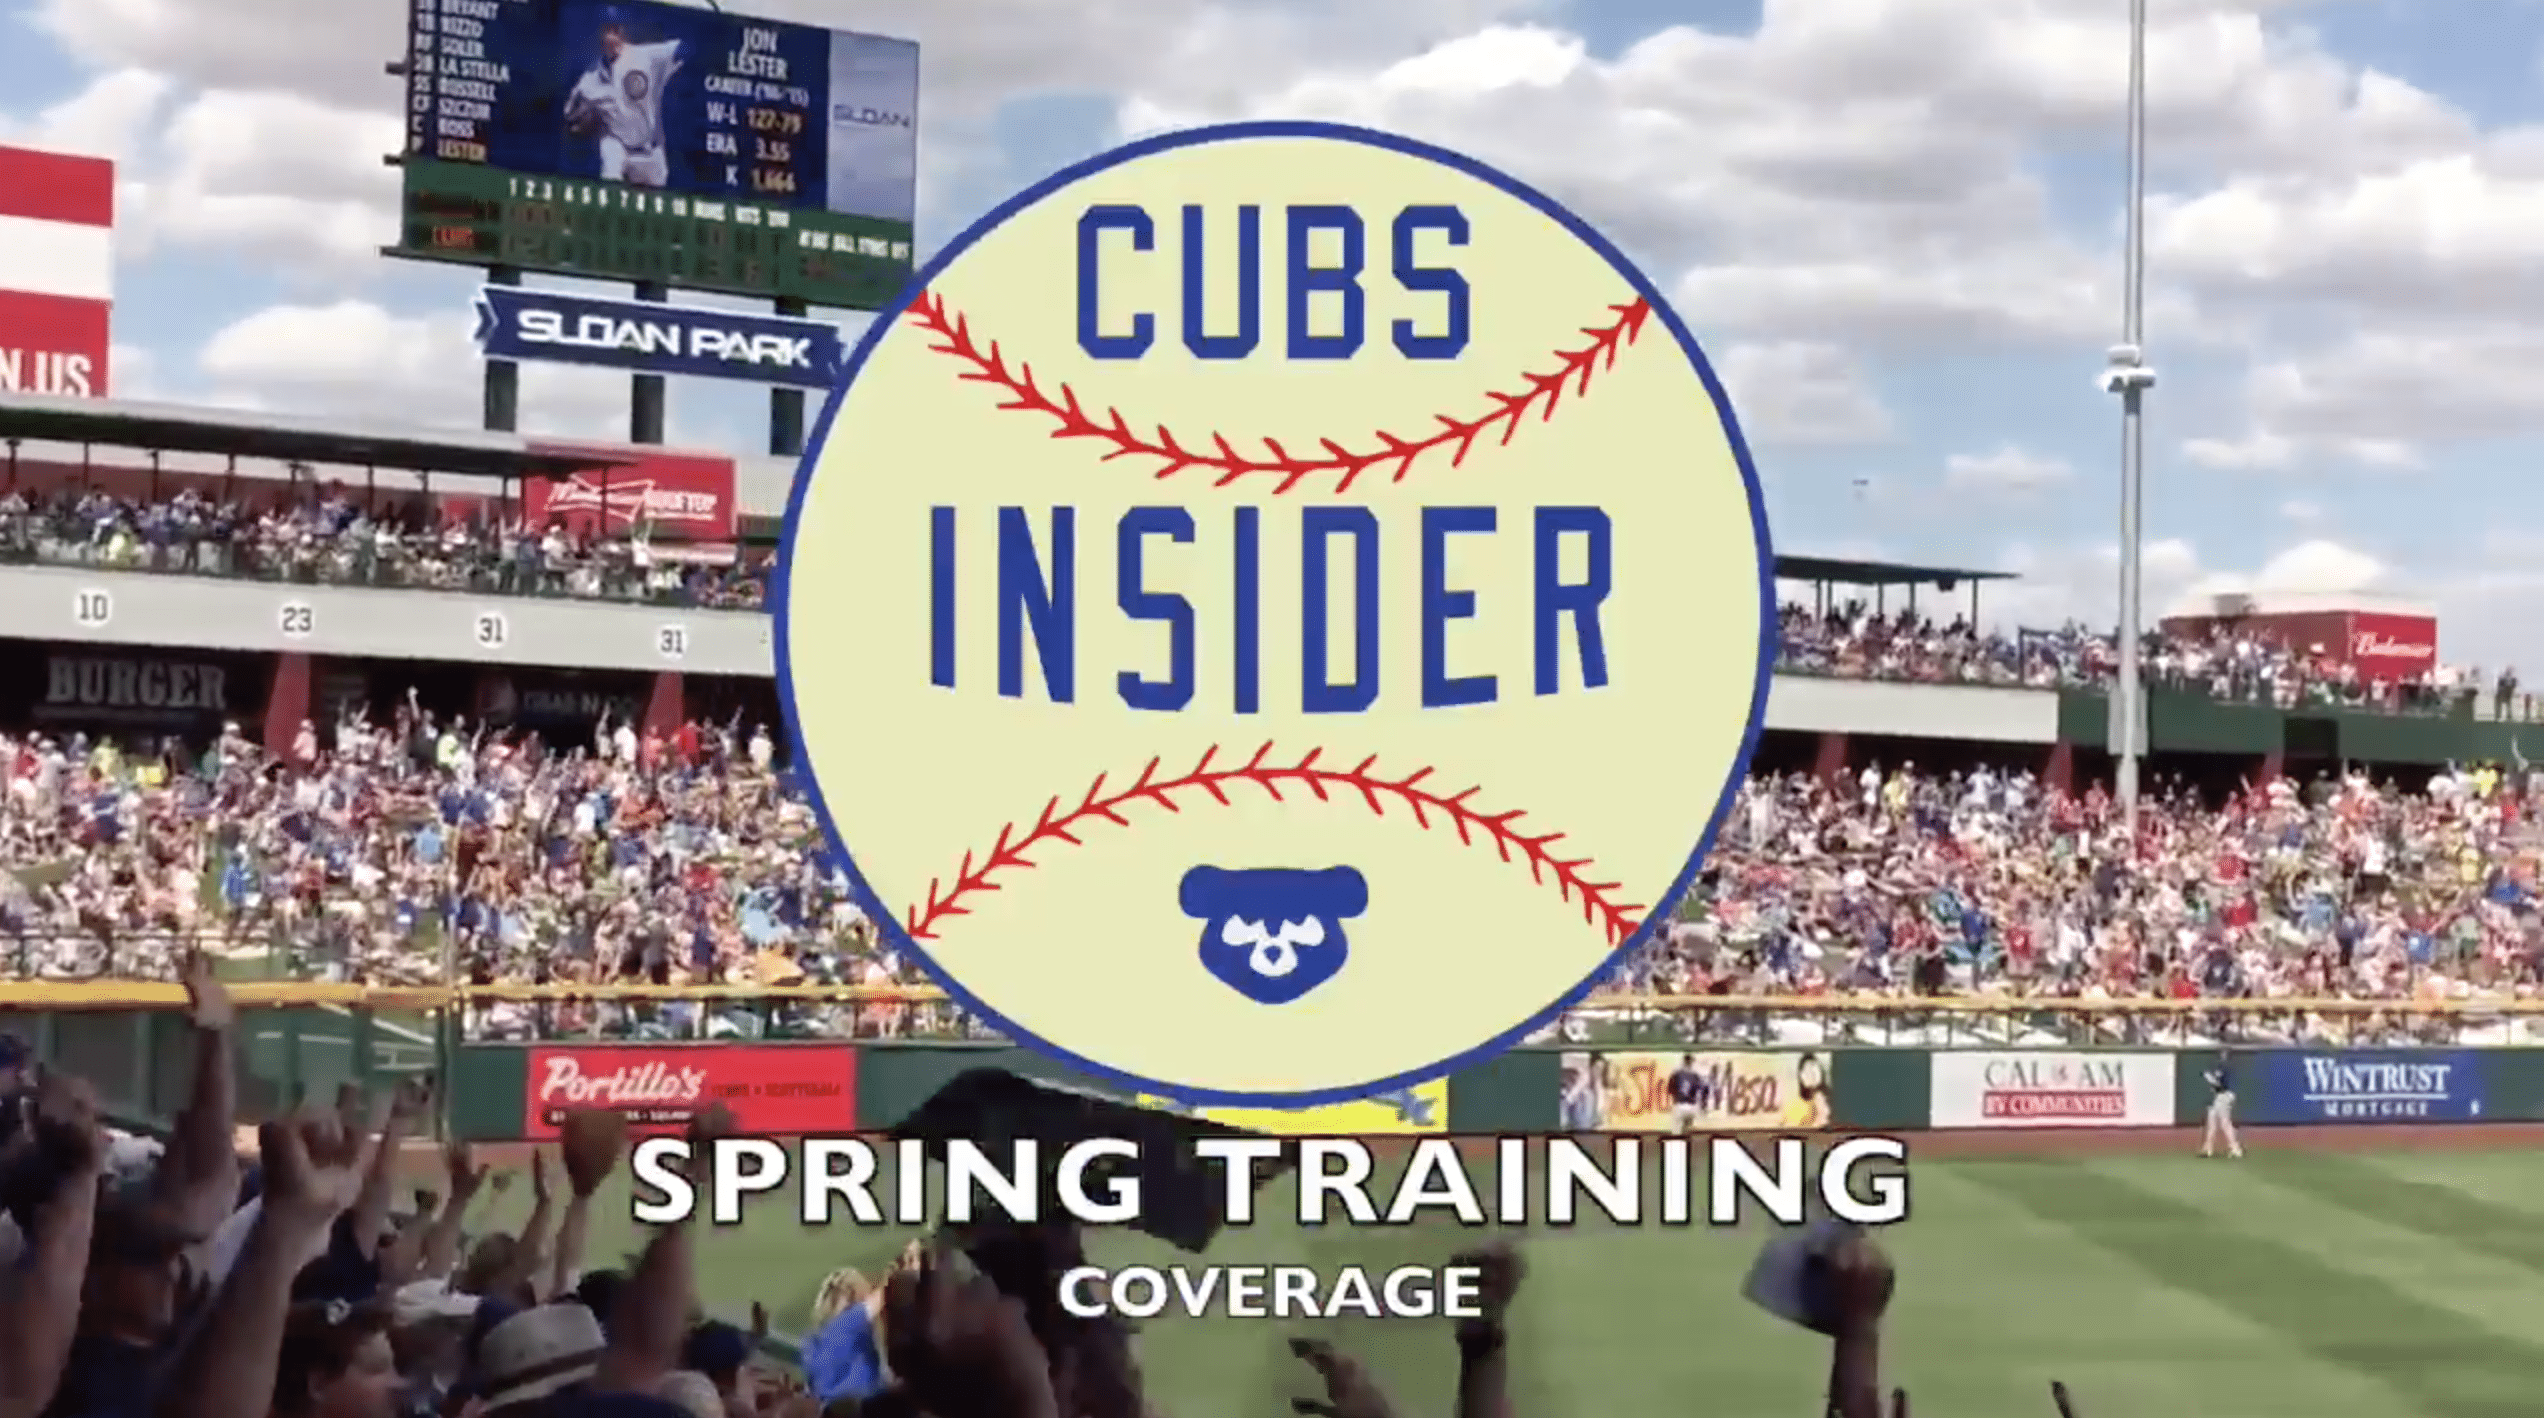 Photo of CI Recap (3/27/18) – Cubs 2, Red Sox 4: Cubs Close Out Spring Schedule, Next One Counts